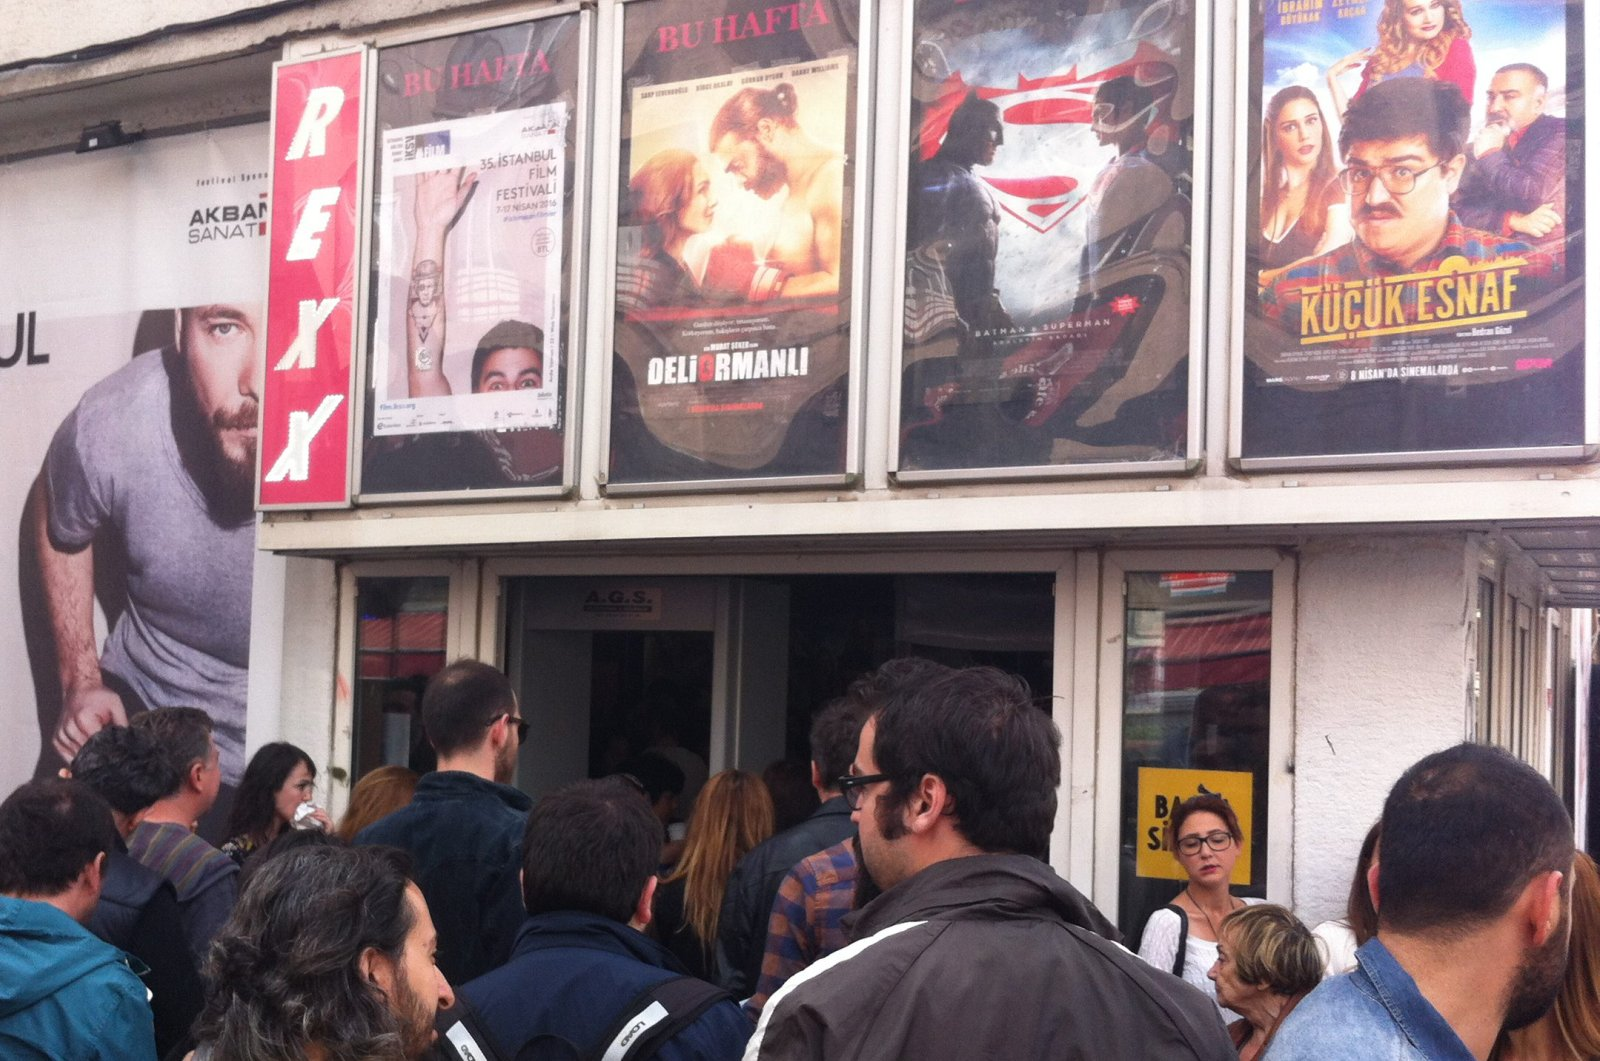 This file photo shows movie enthusiasts waiting in front of the Rexx movie theater during the 35th edition of Istanbul International Film Festival, in April 2016, Kadıköy, Istanbul. (Sabah File Photo)